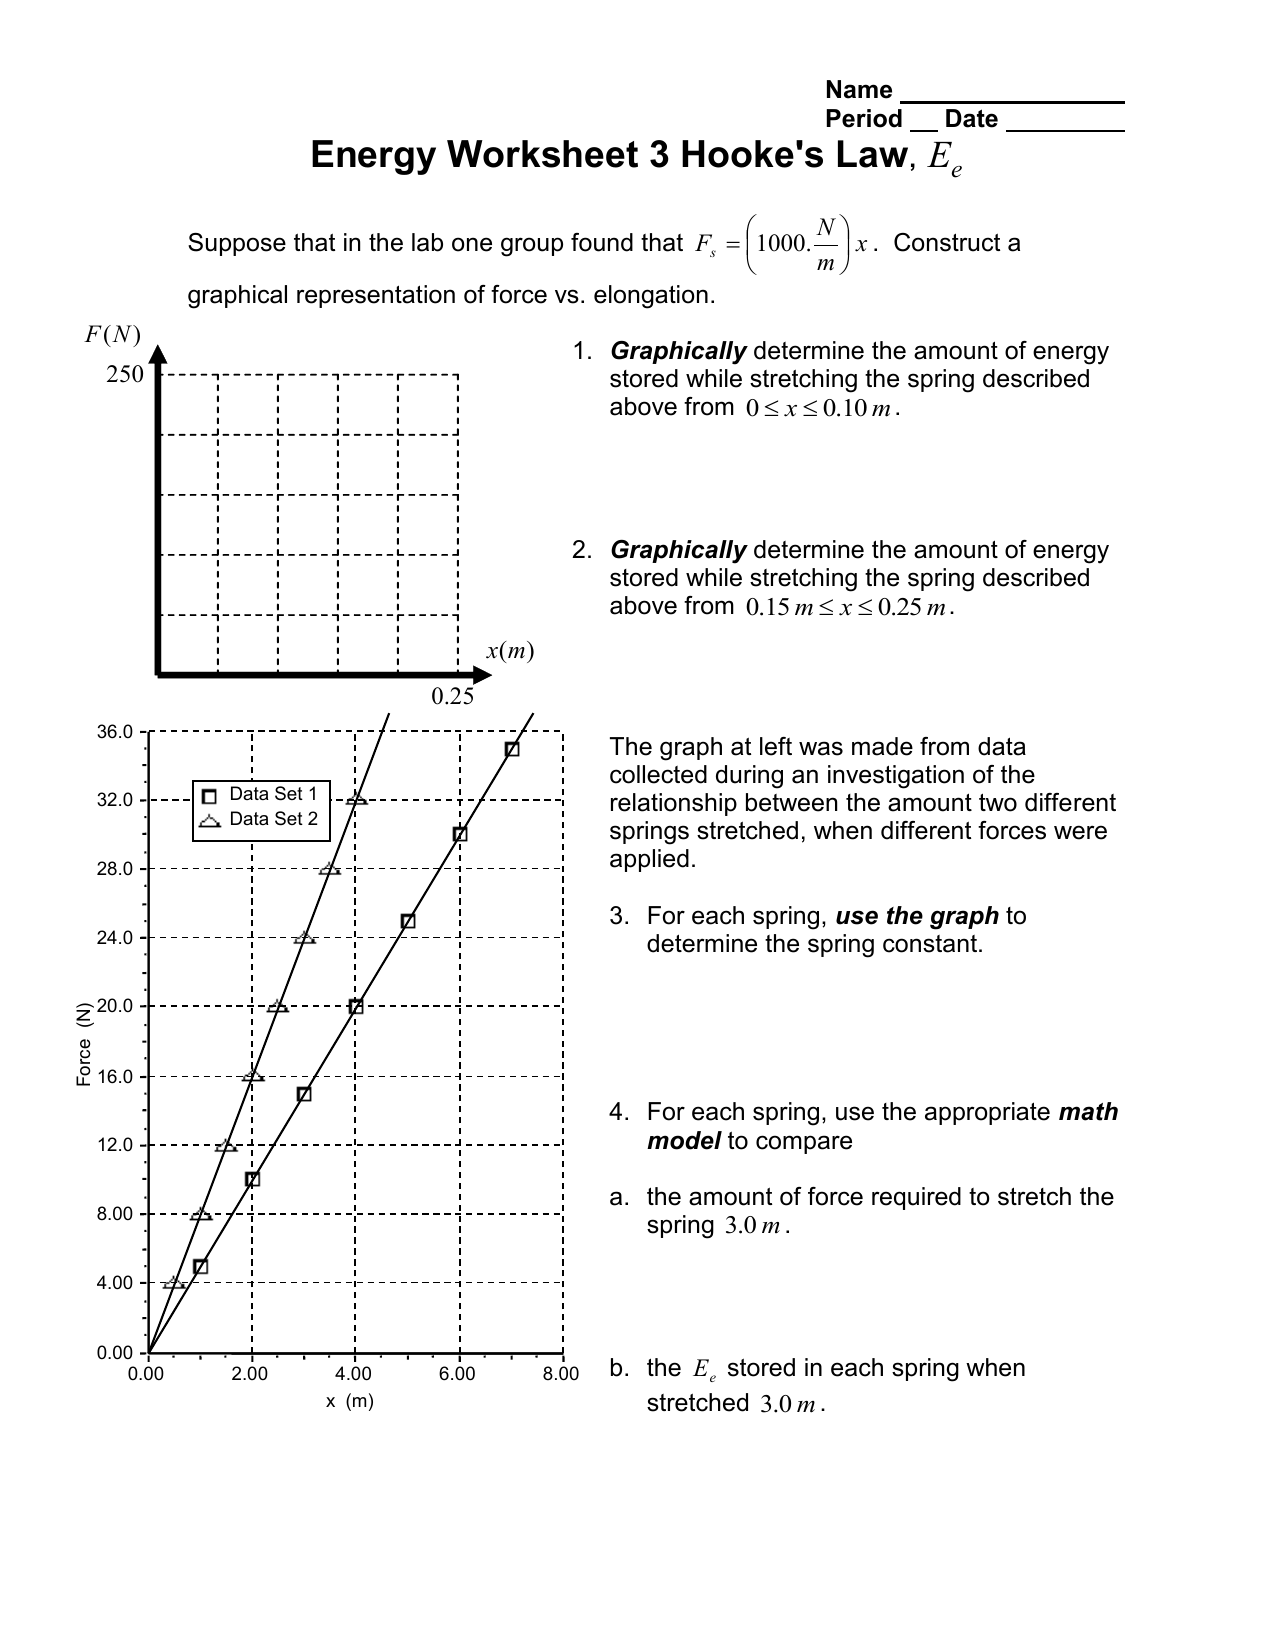 Energy Storage And Transfer Model Worksheet 4 Answers